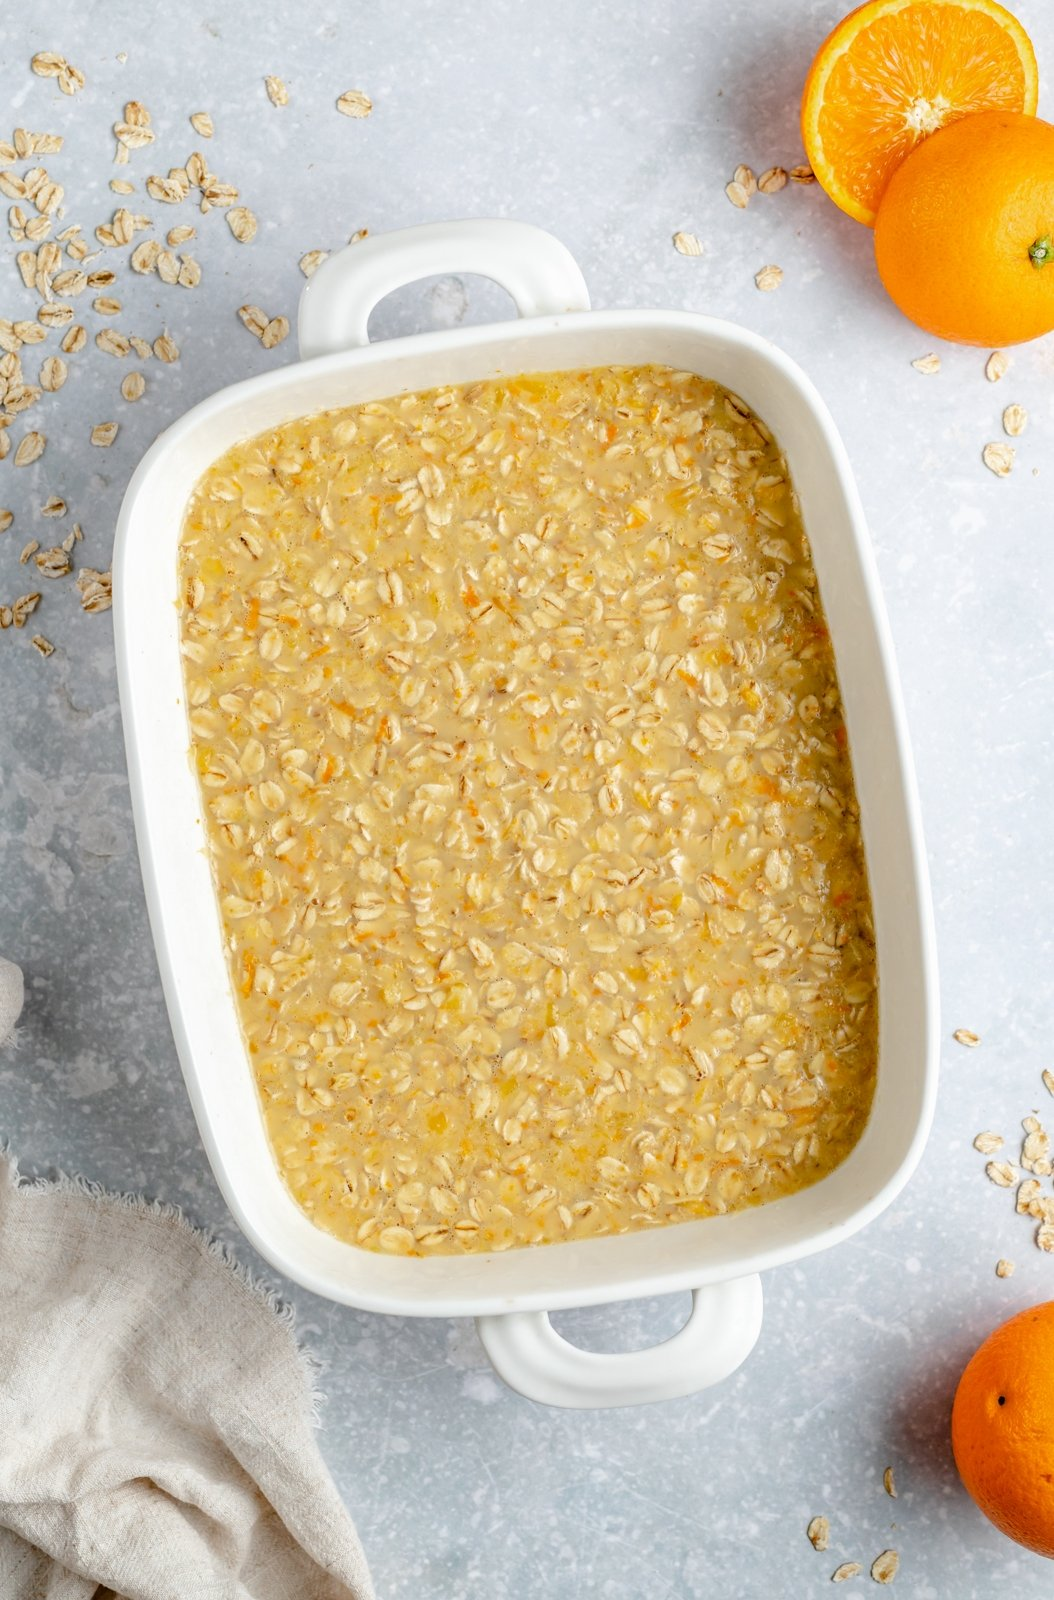 unbaked orange baked oatmeal in a rectangular baking dish